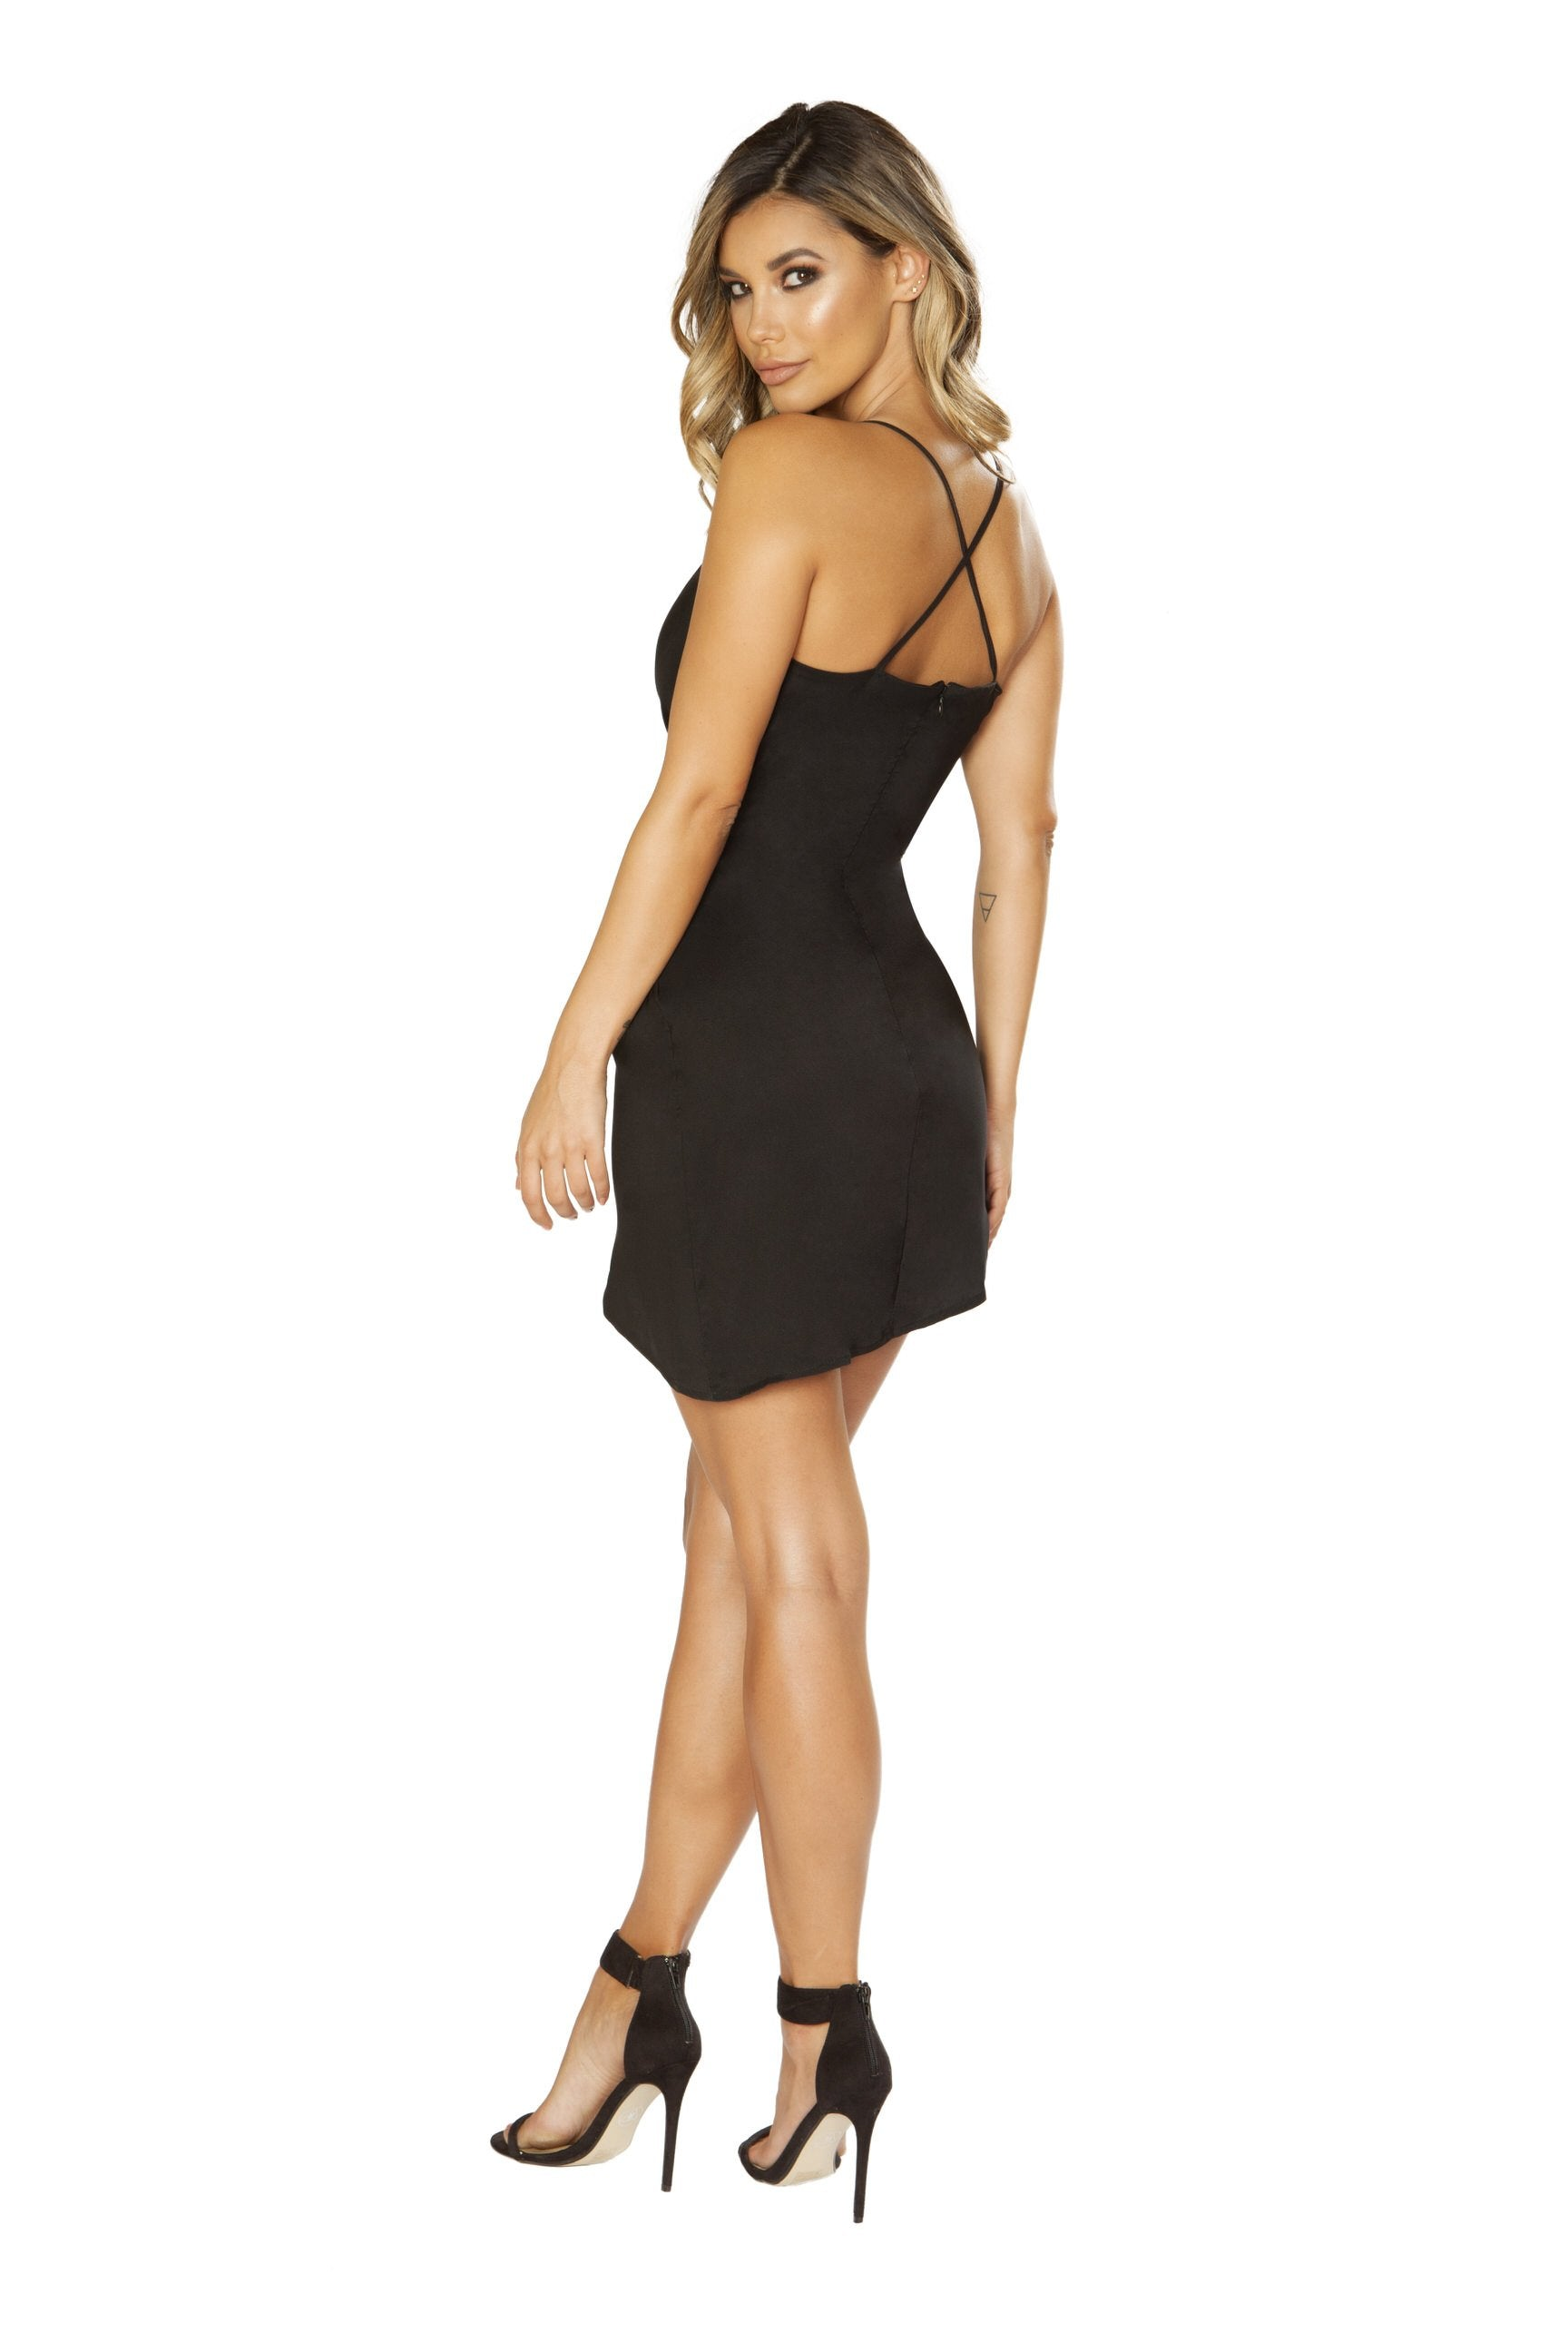 3644 - Spaghetti Strap Satin Dress with Overlapping Scrunch Detail - PlaythingsMiami